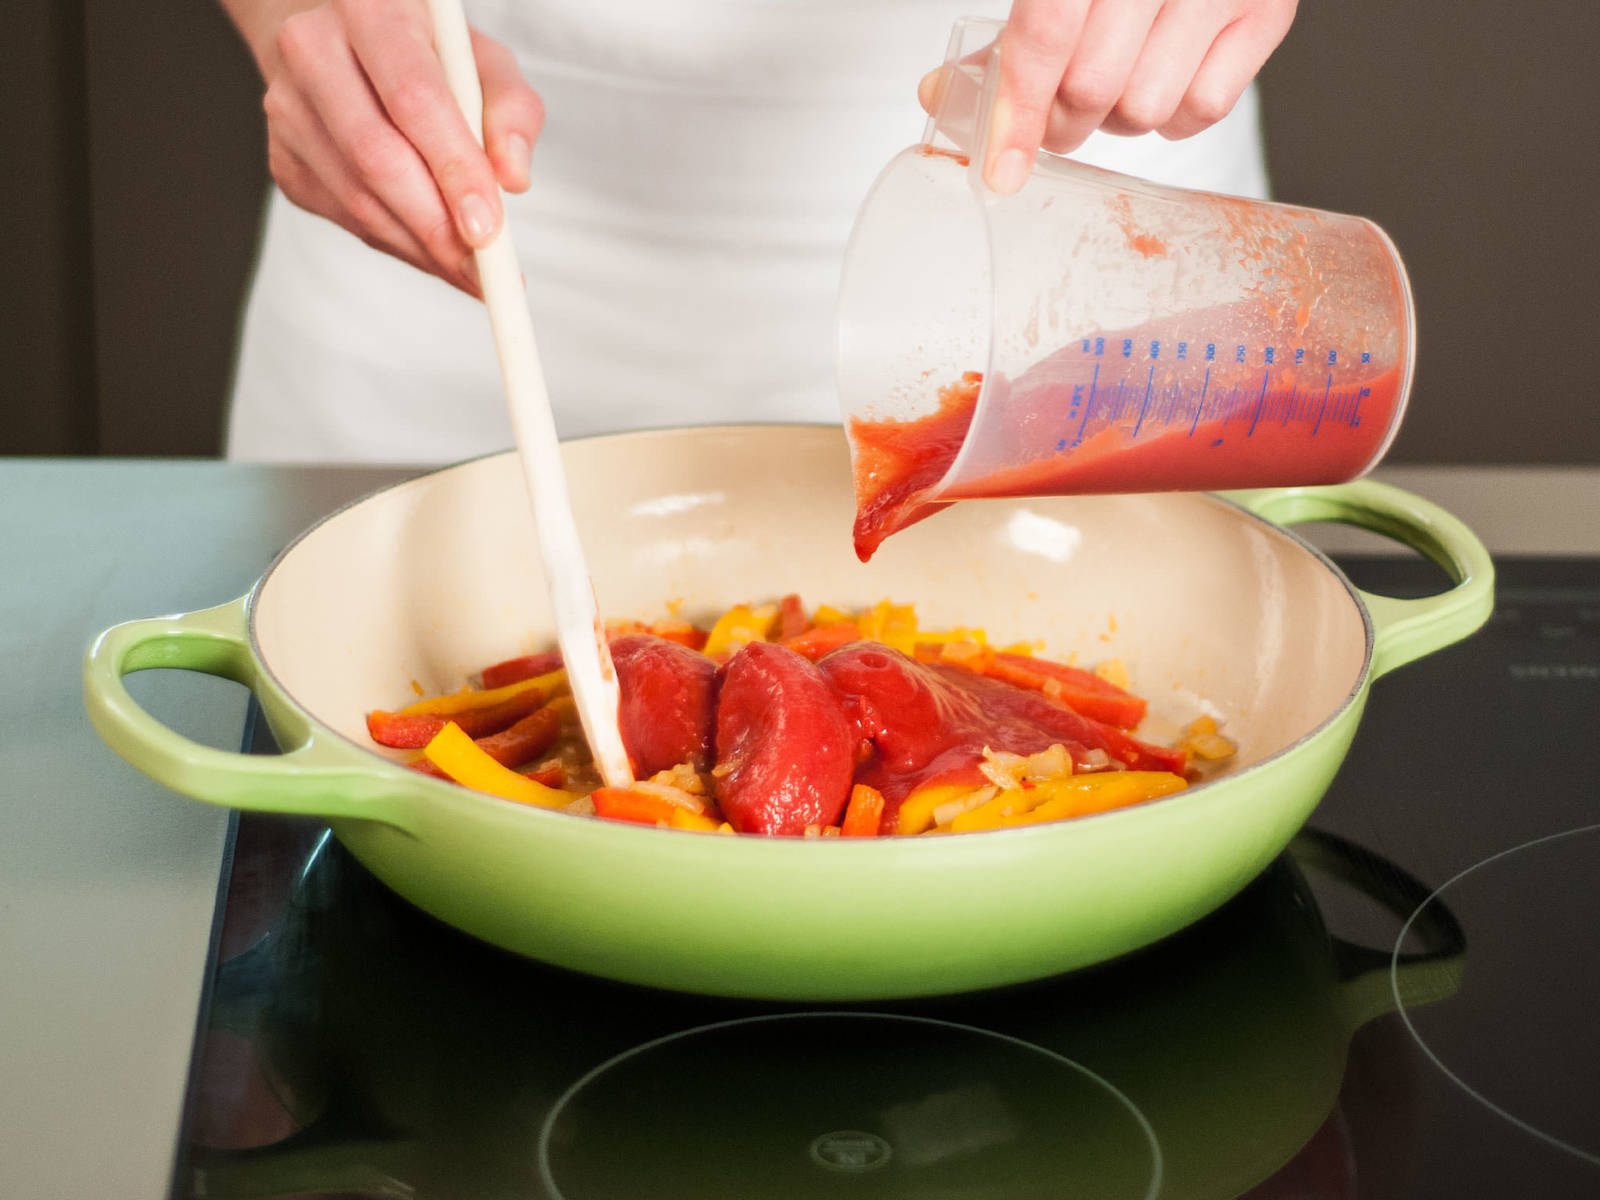 Add fresh tomatoes and canned tomatoes to the pan and lightly crush them with the cooking spoon.